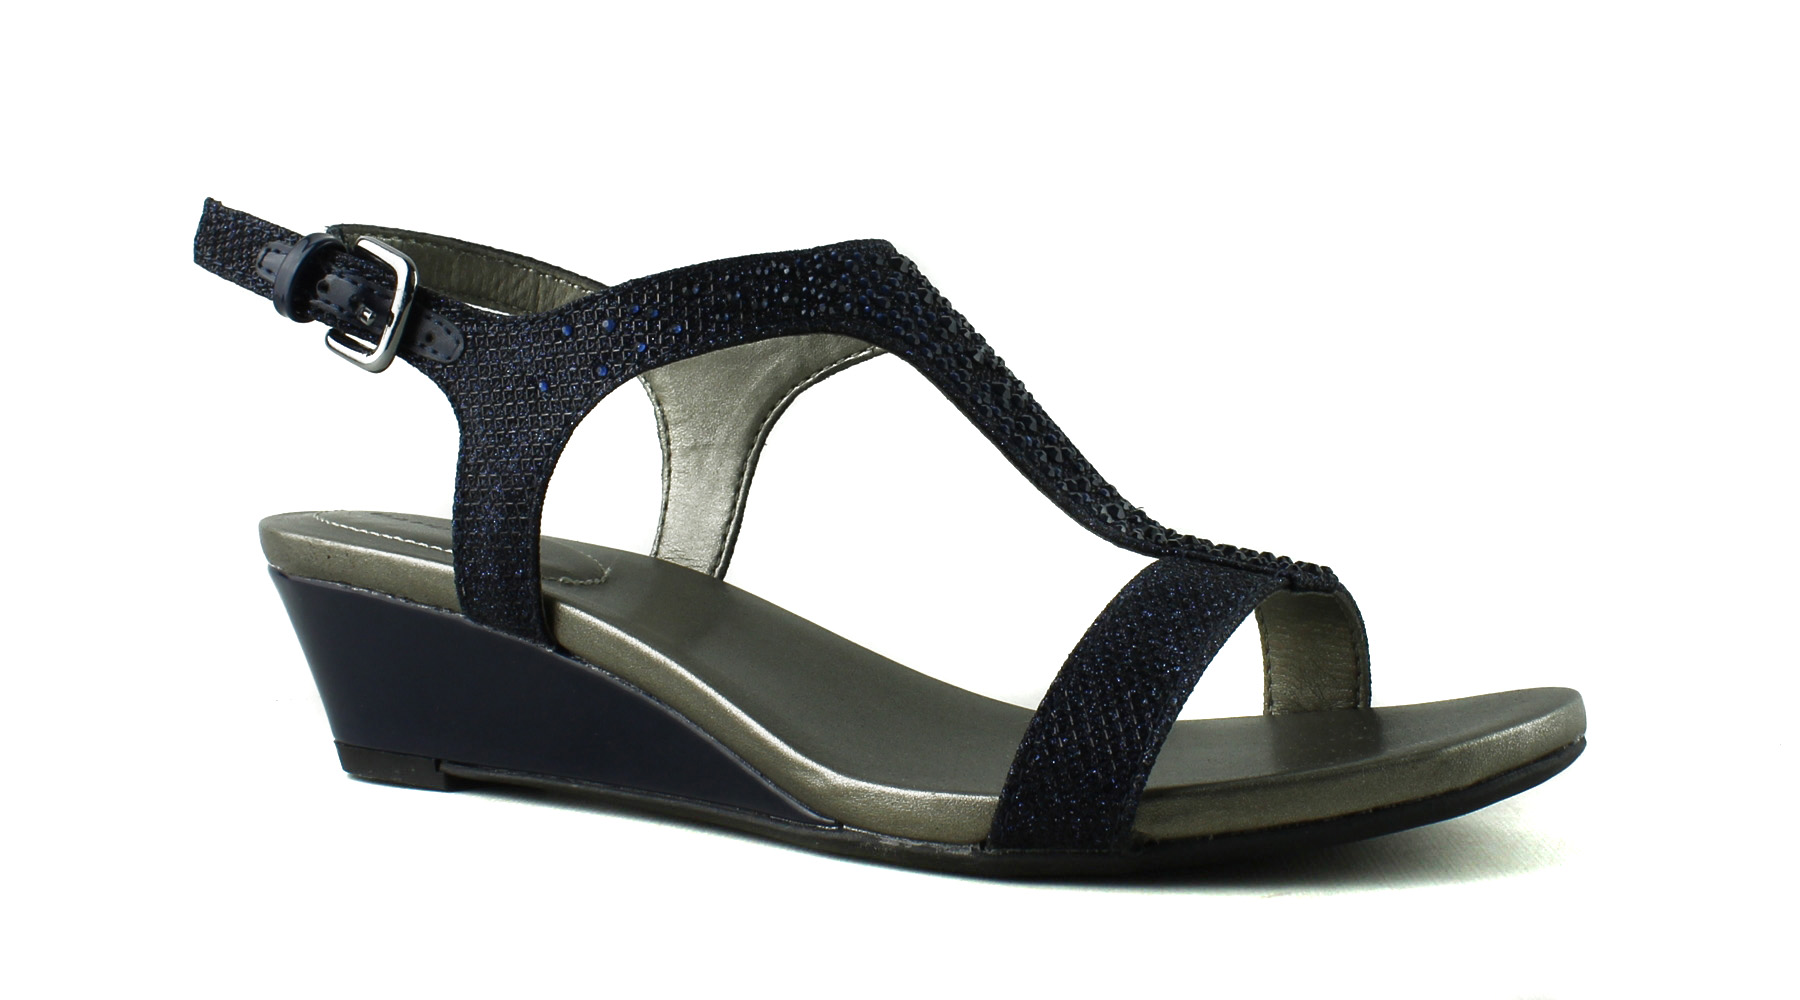 Bandolino Womens Blue Ankle 6 Strap Heels Size 6 Ankle (370099) 4473e8